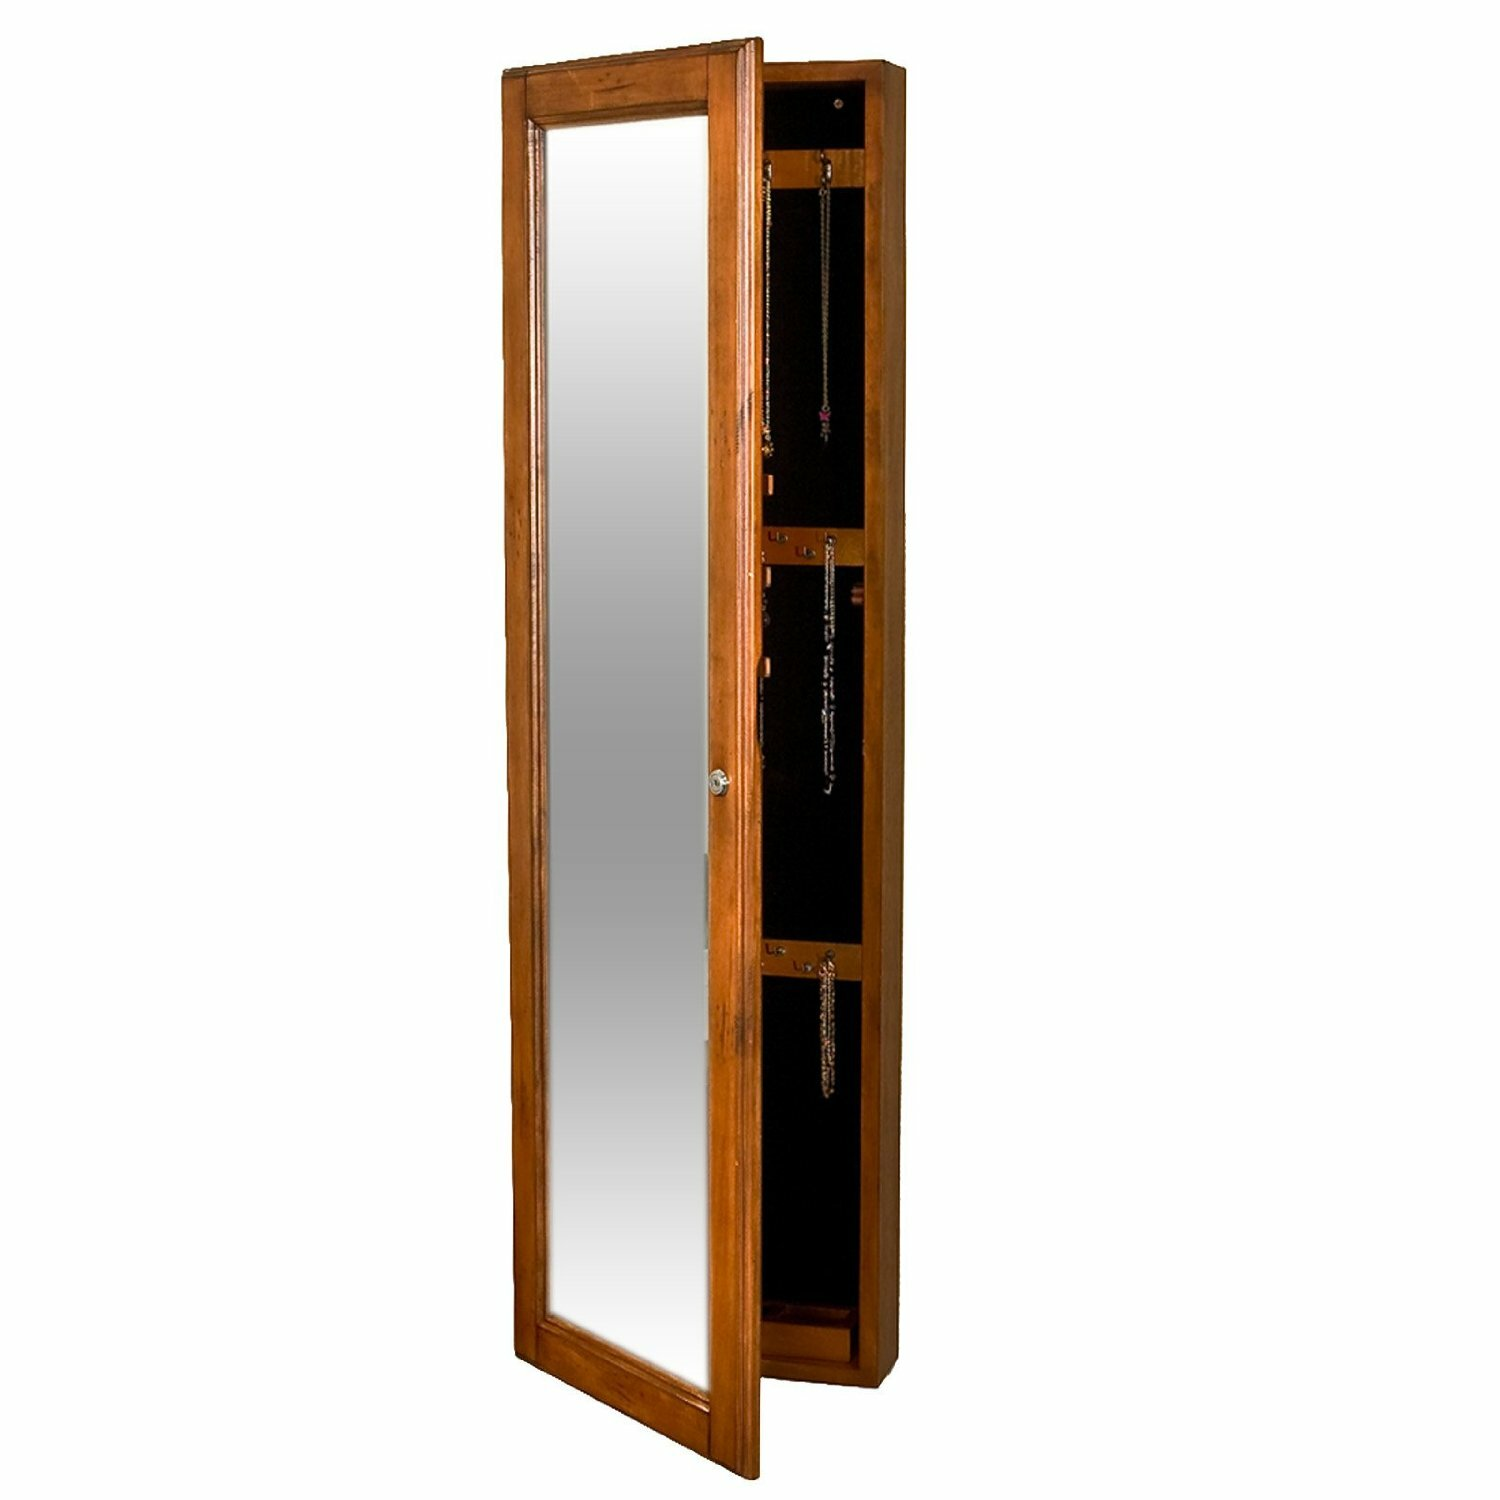 Alcott hill chauncey wall mounted jewelry armoire with for Wall mounted mirror